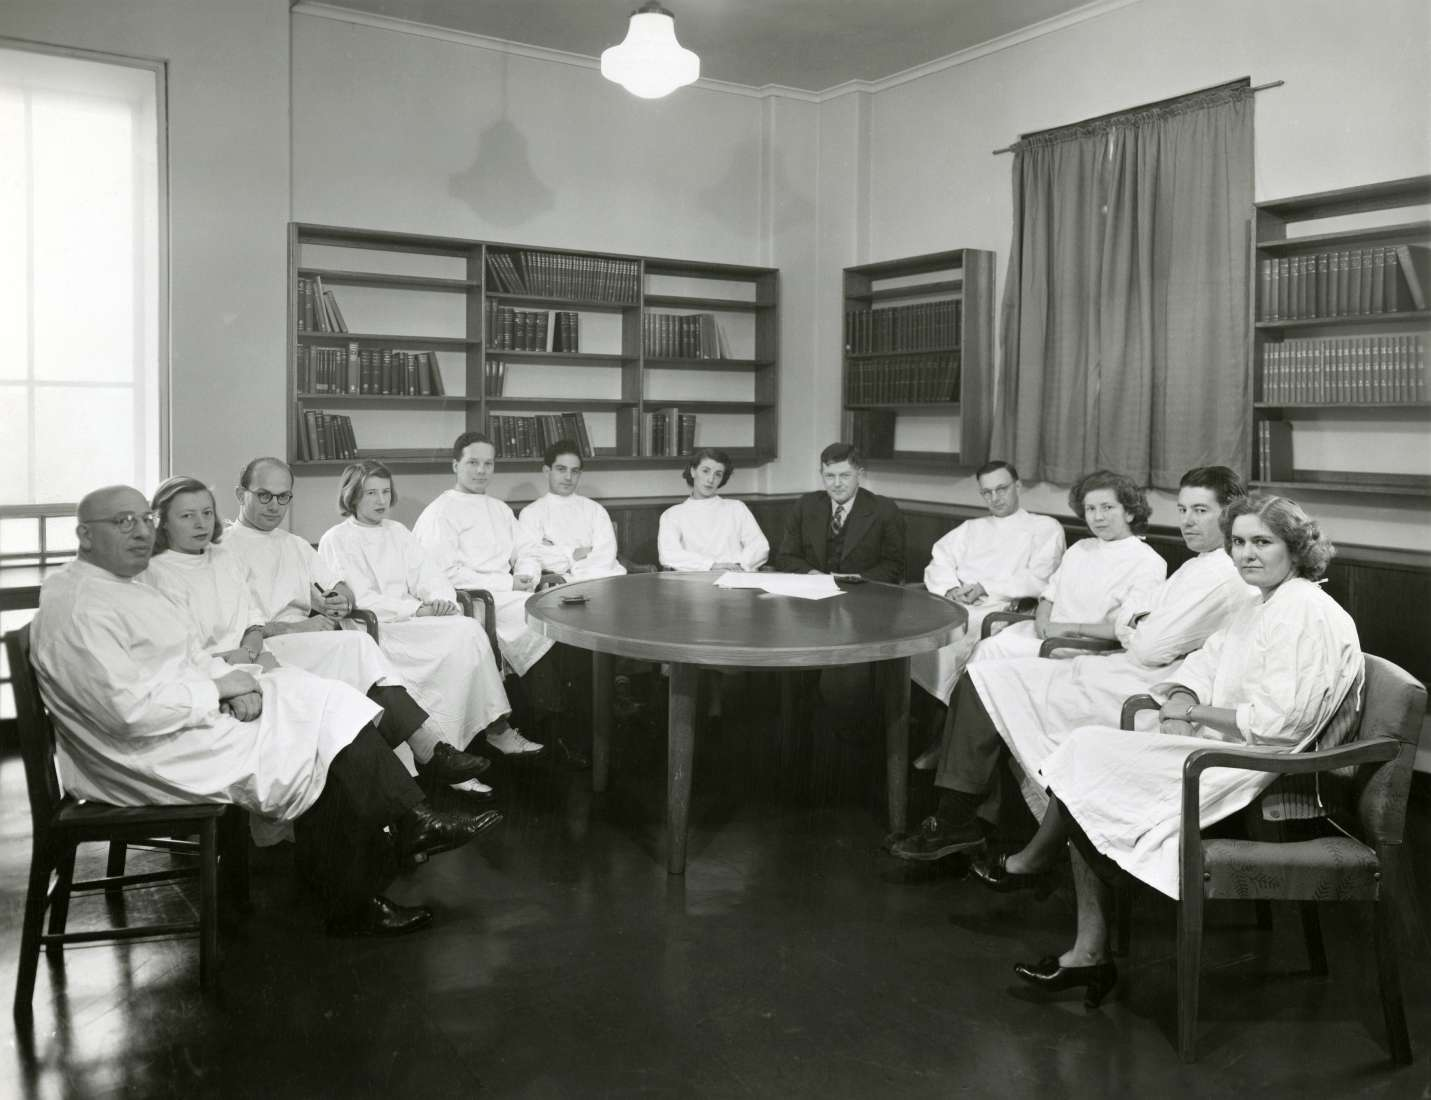 A large group of scientists pictured seated around a table, wearing lab coats. Sir Frank Macfarlane Burnet wears a suit